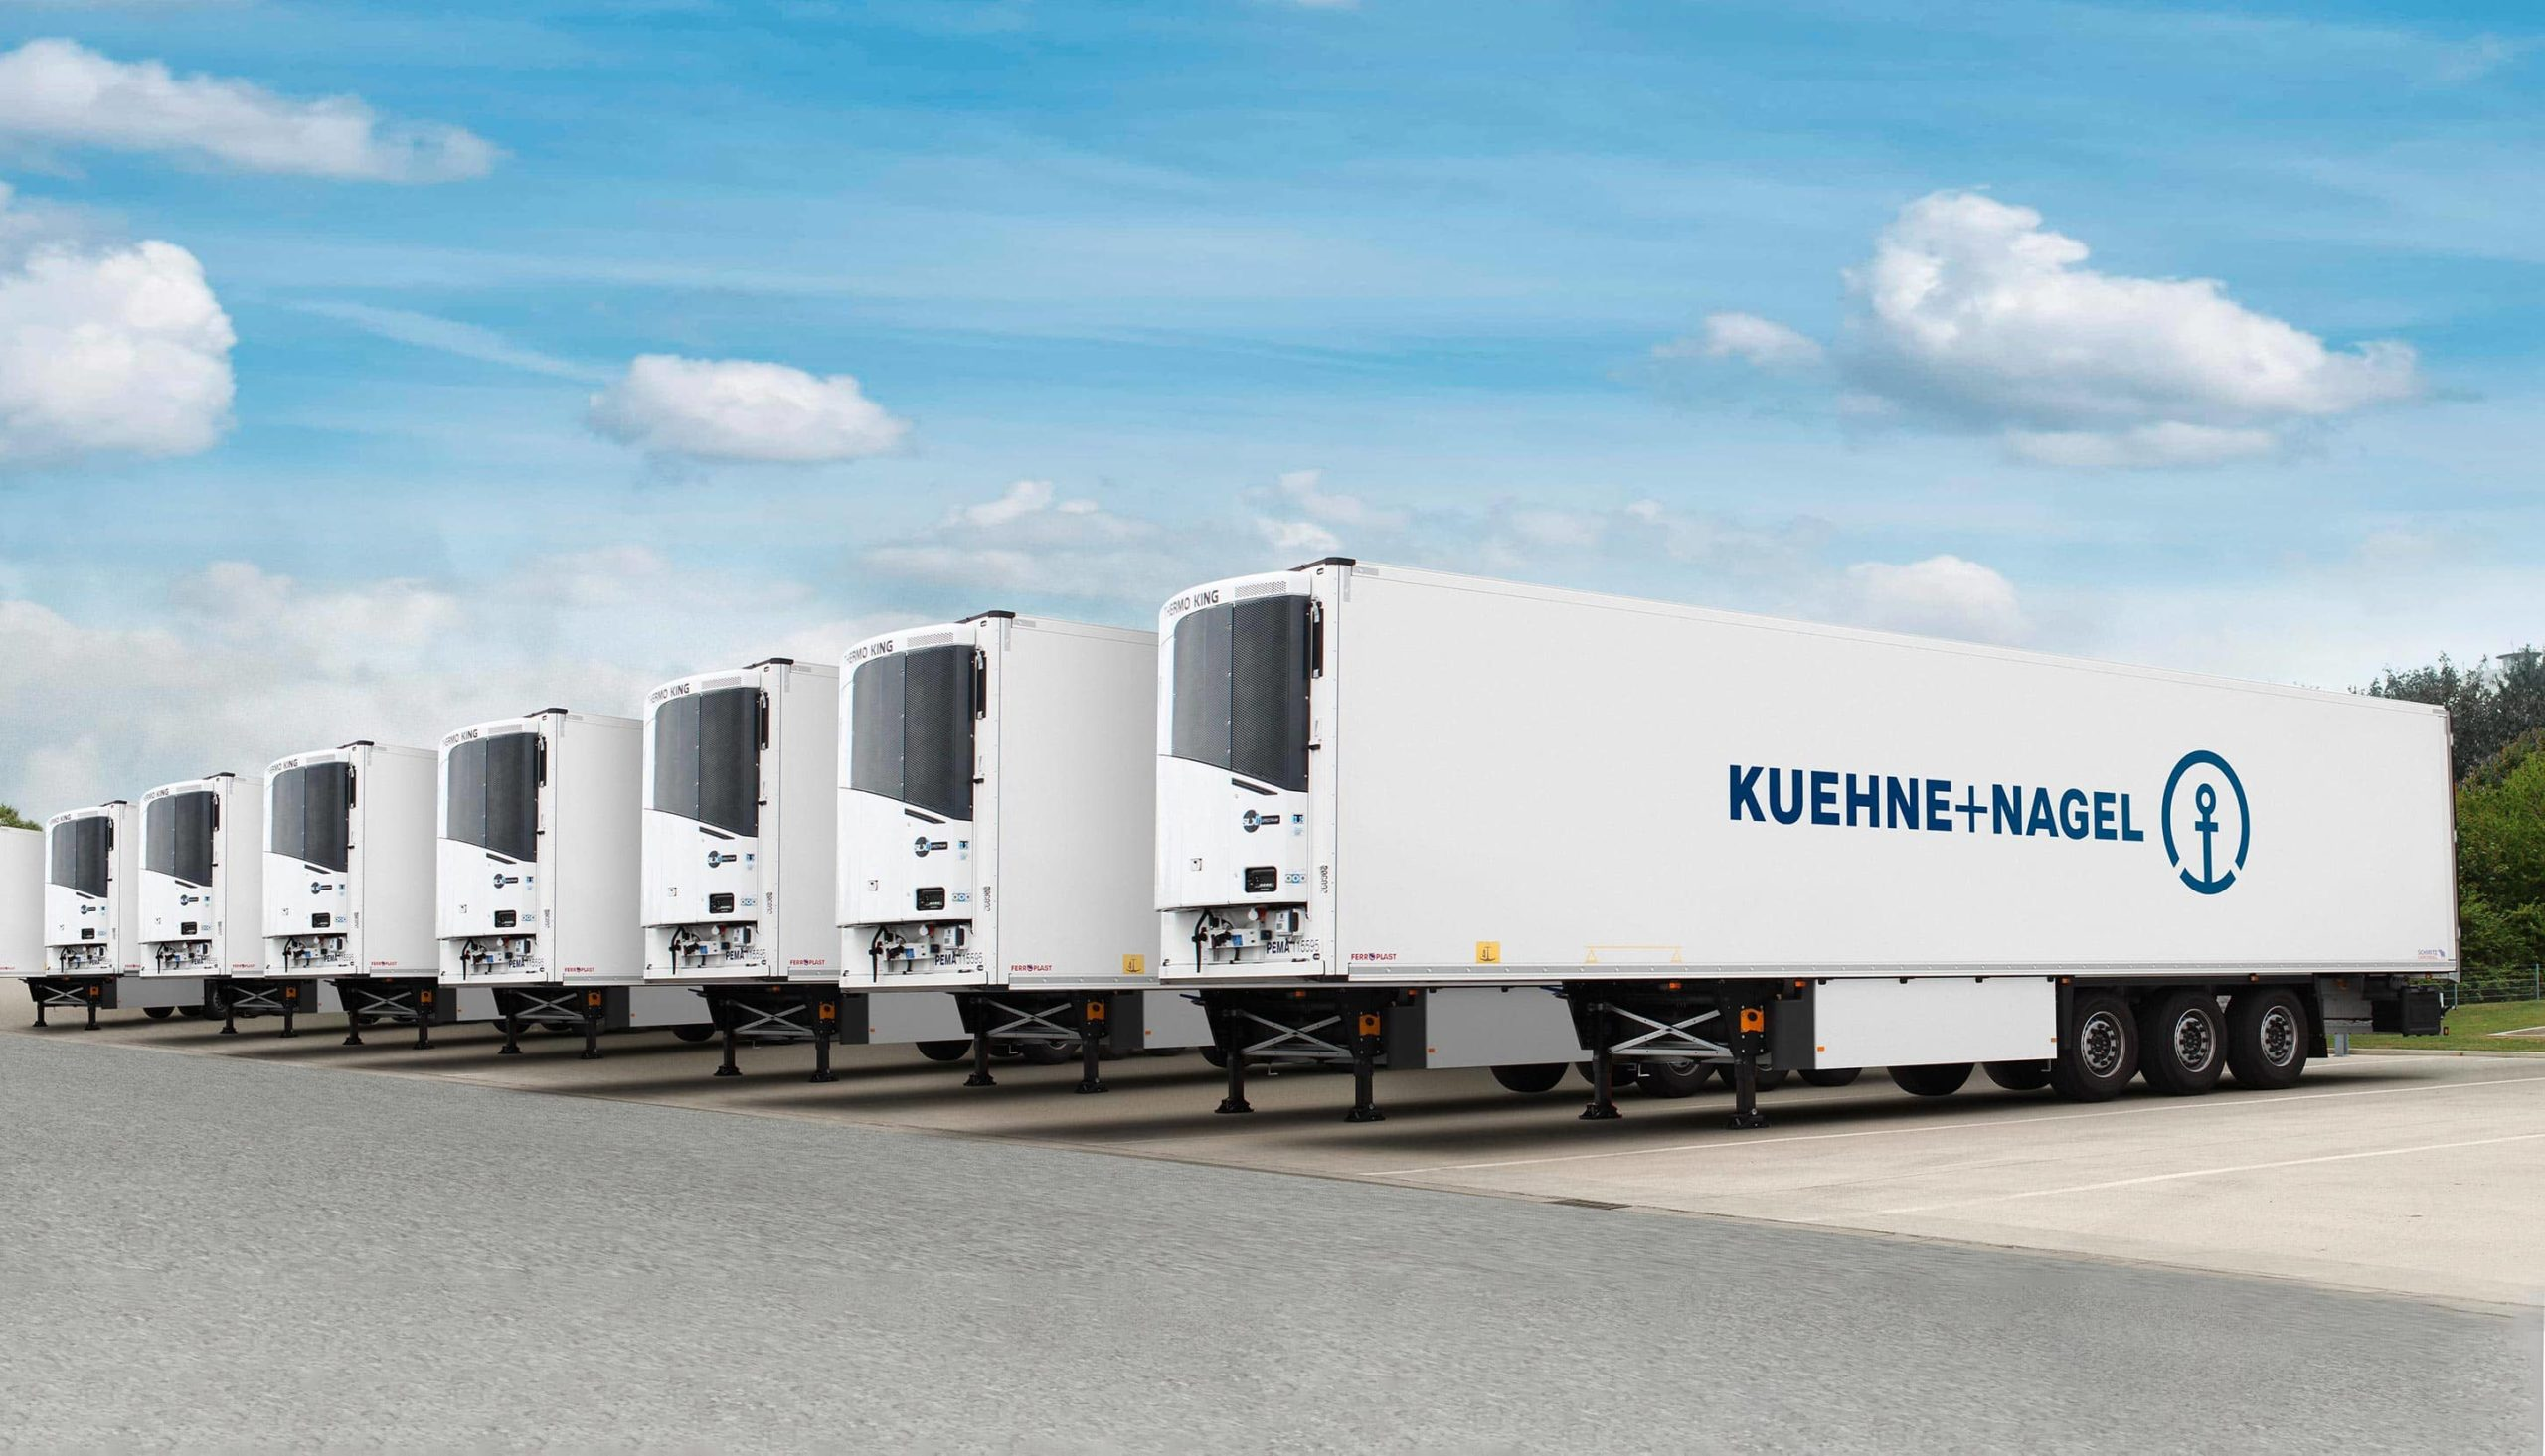 kuehne-nagel-transport